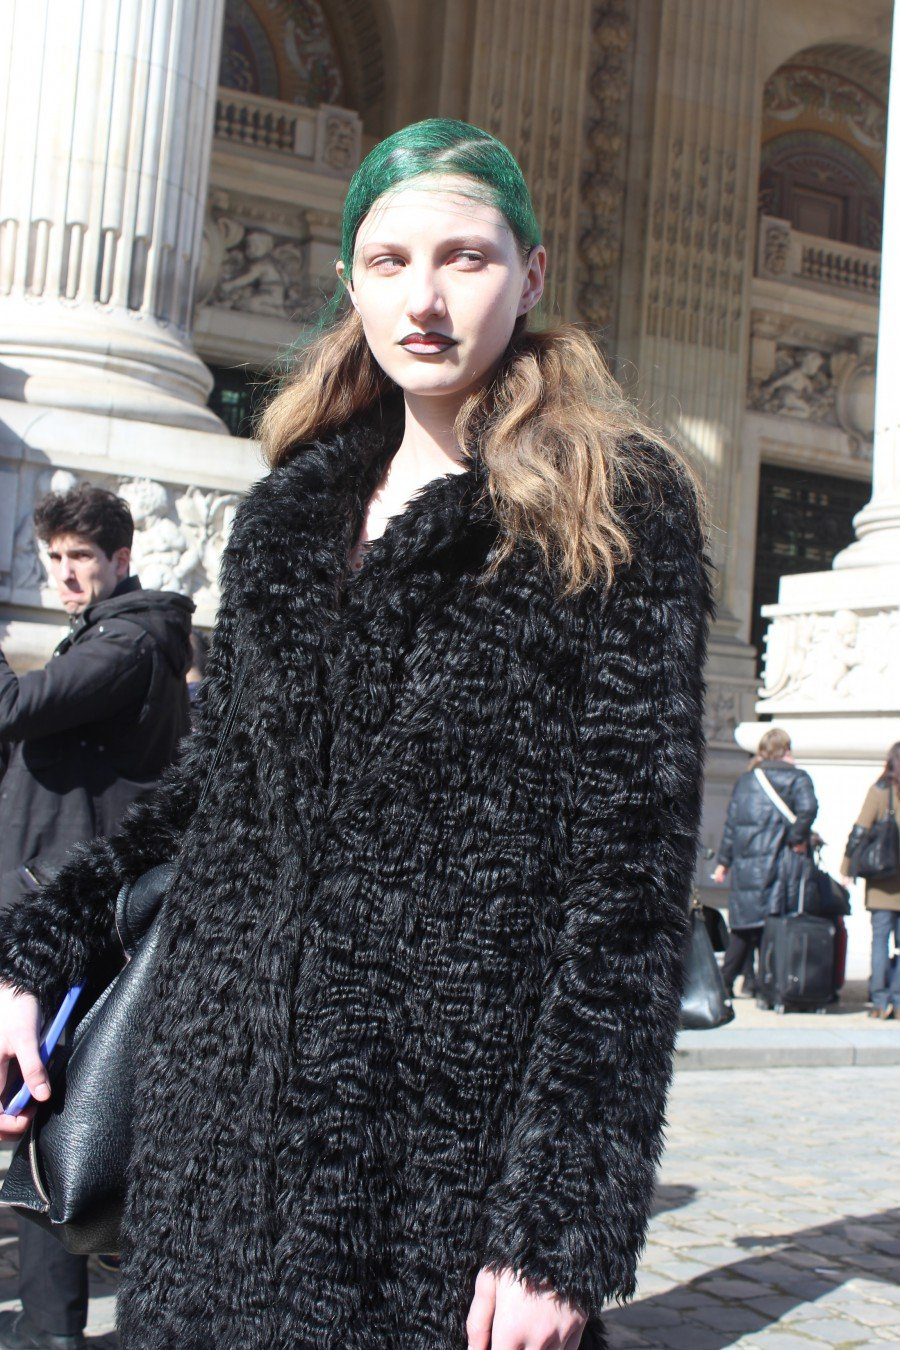 Model after Maison Margiela Paris 2016